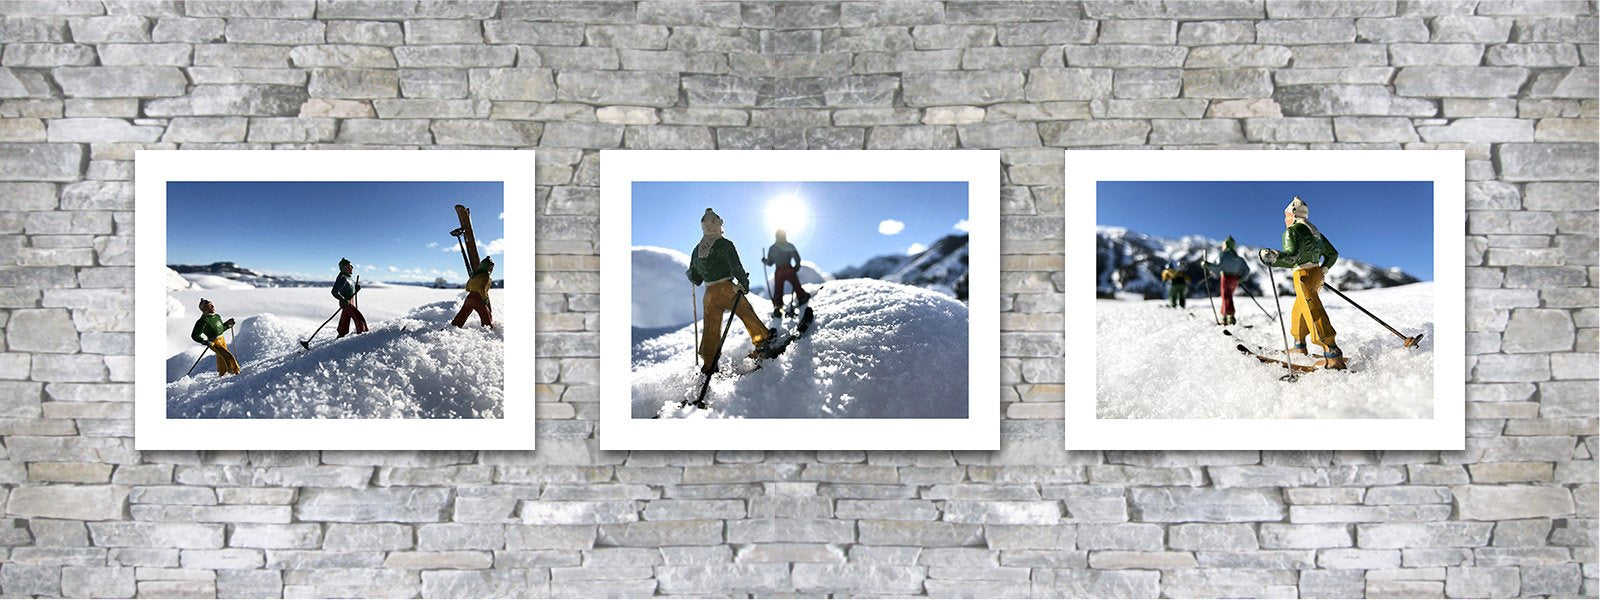 Vintage toy skier photo pairings by Hooey Mountain